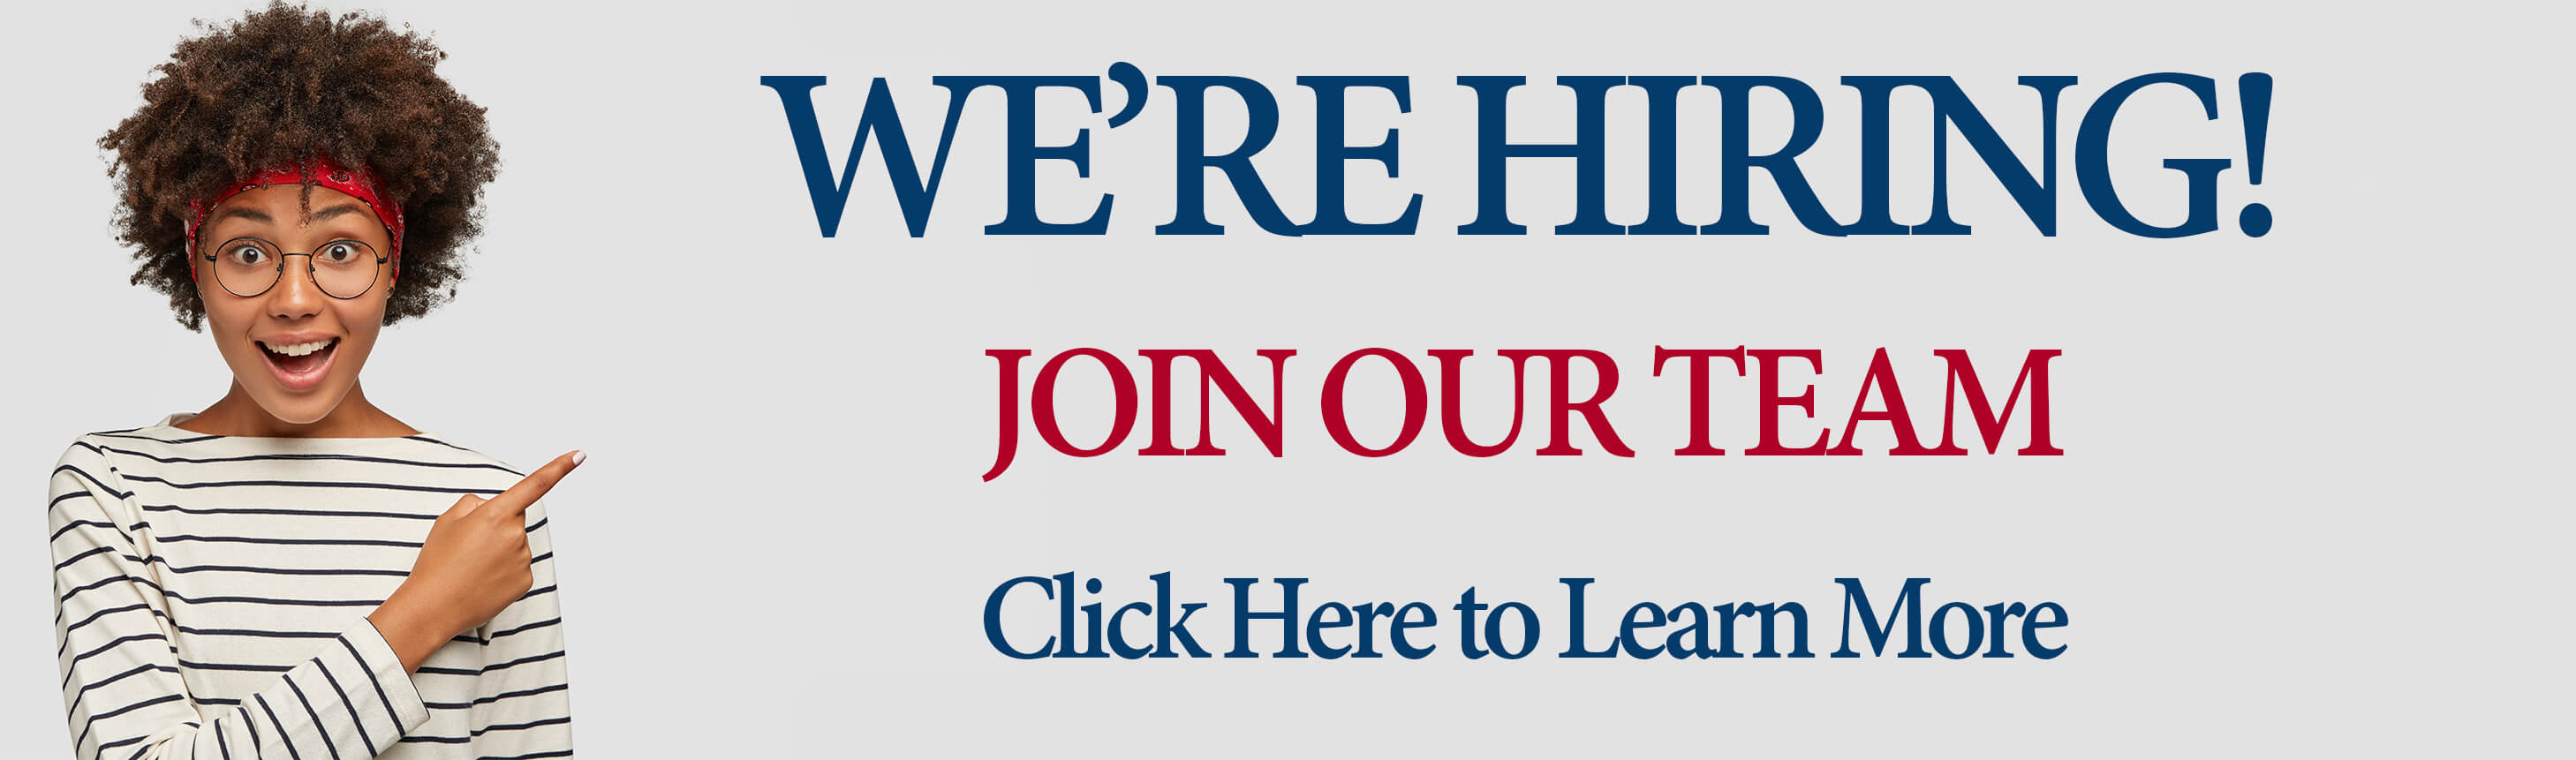 We're hiring! Join our team. Click here to learn more